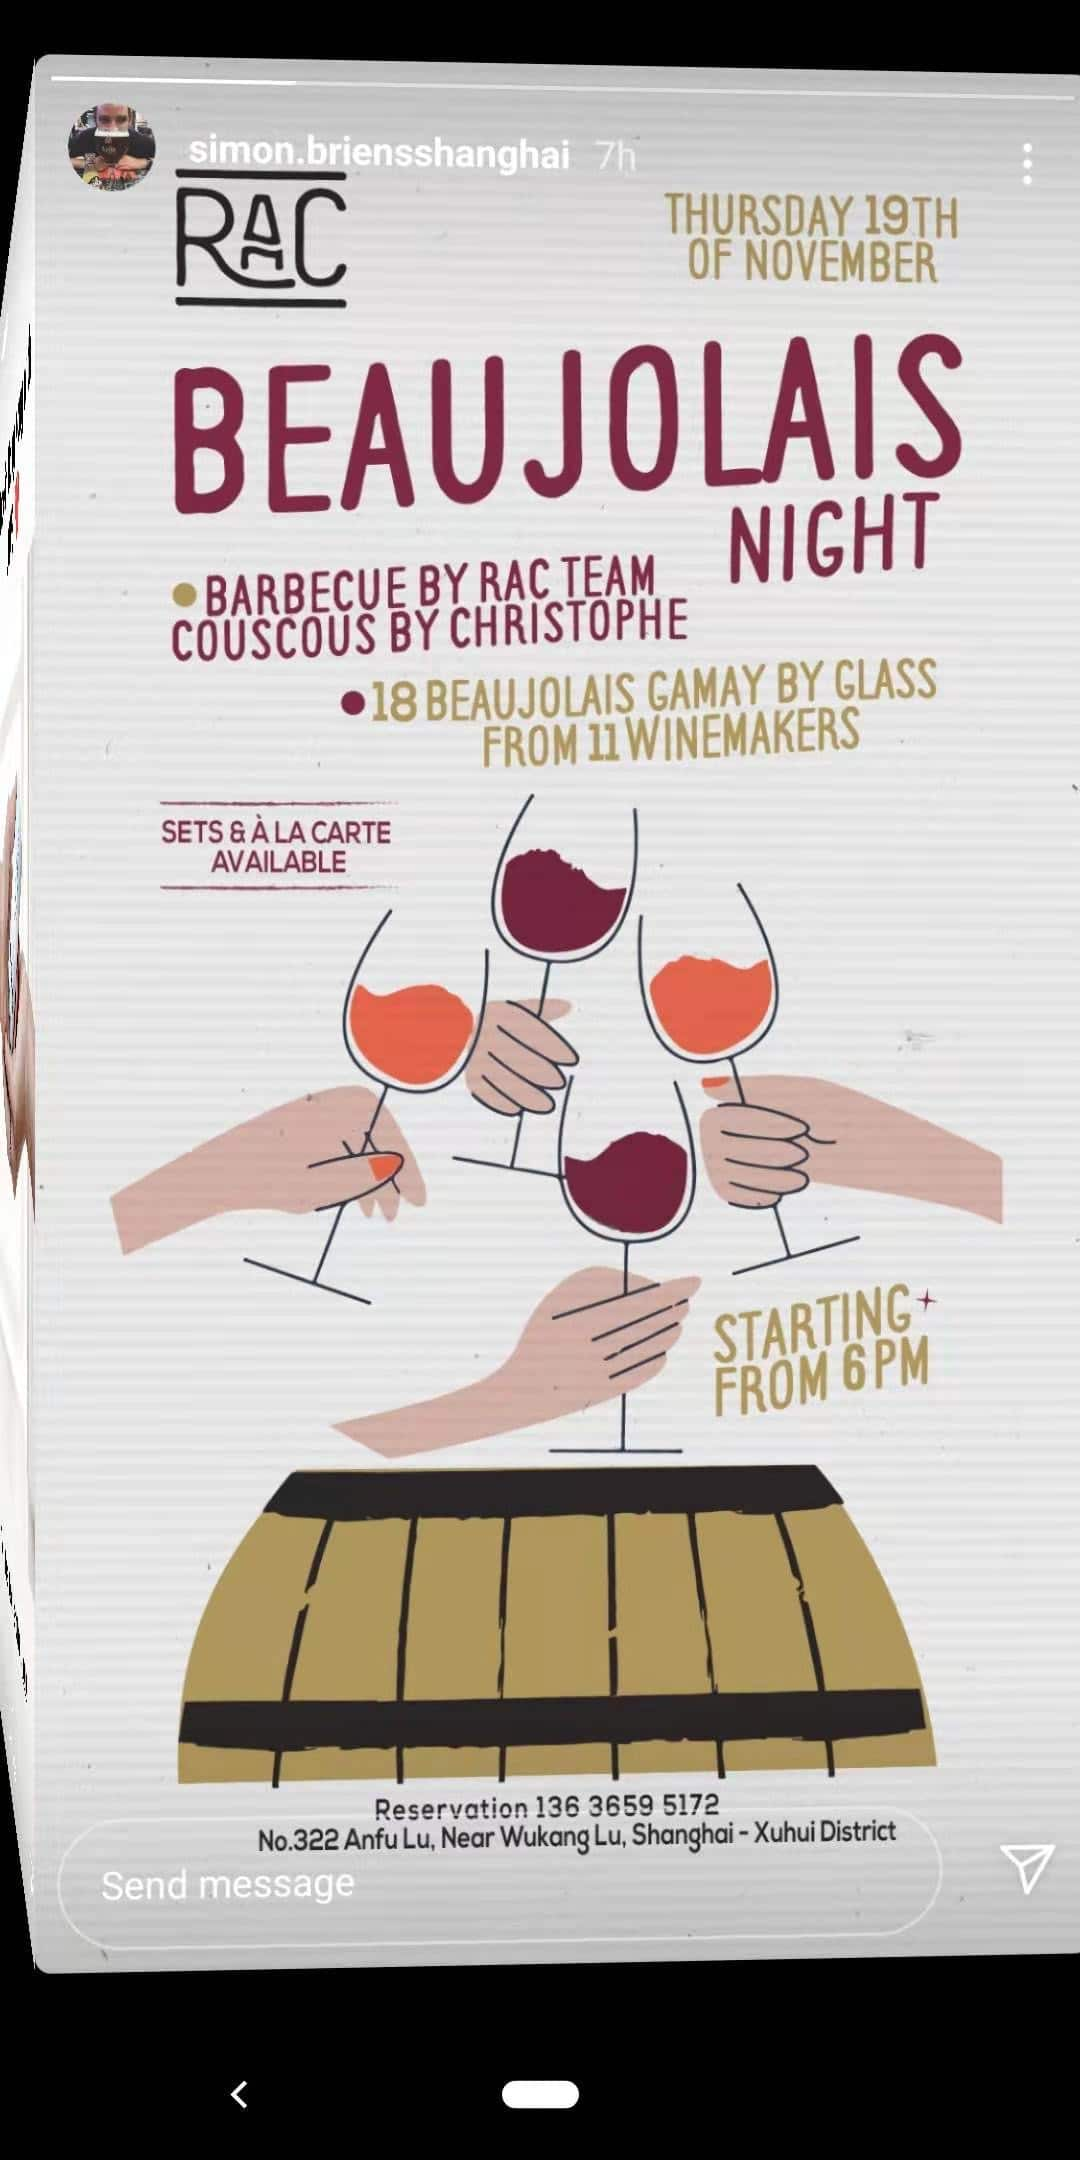 Beaujolais Night at RAC